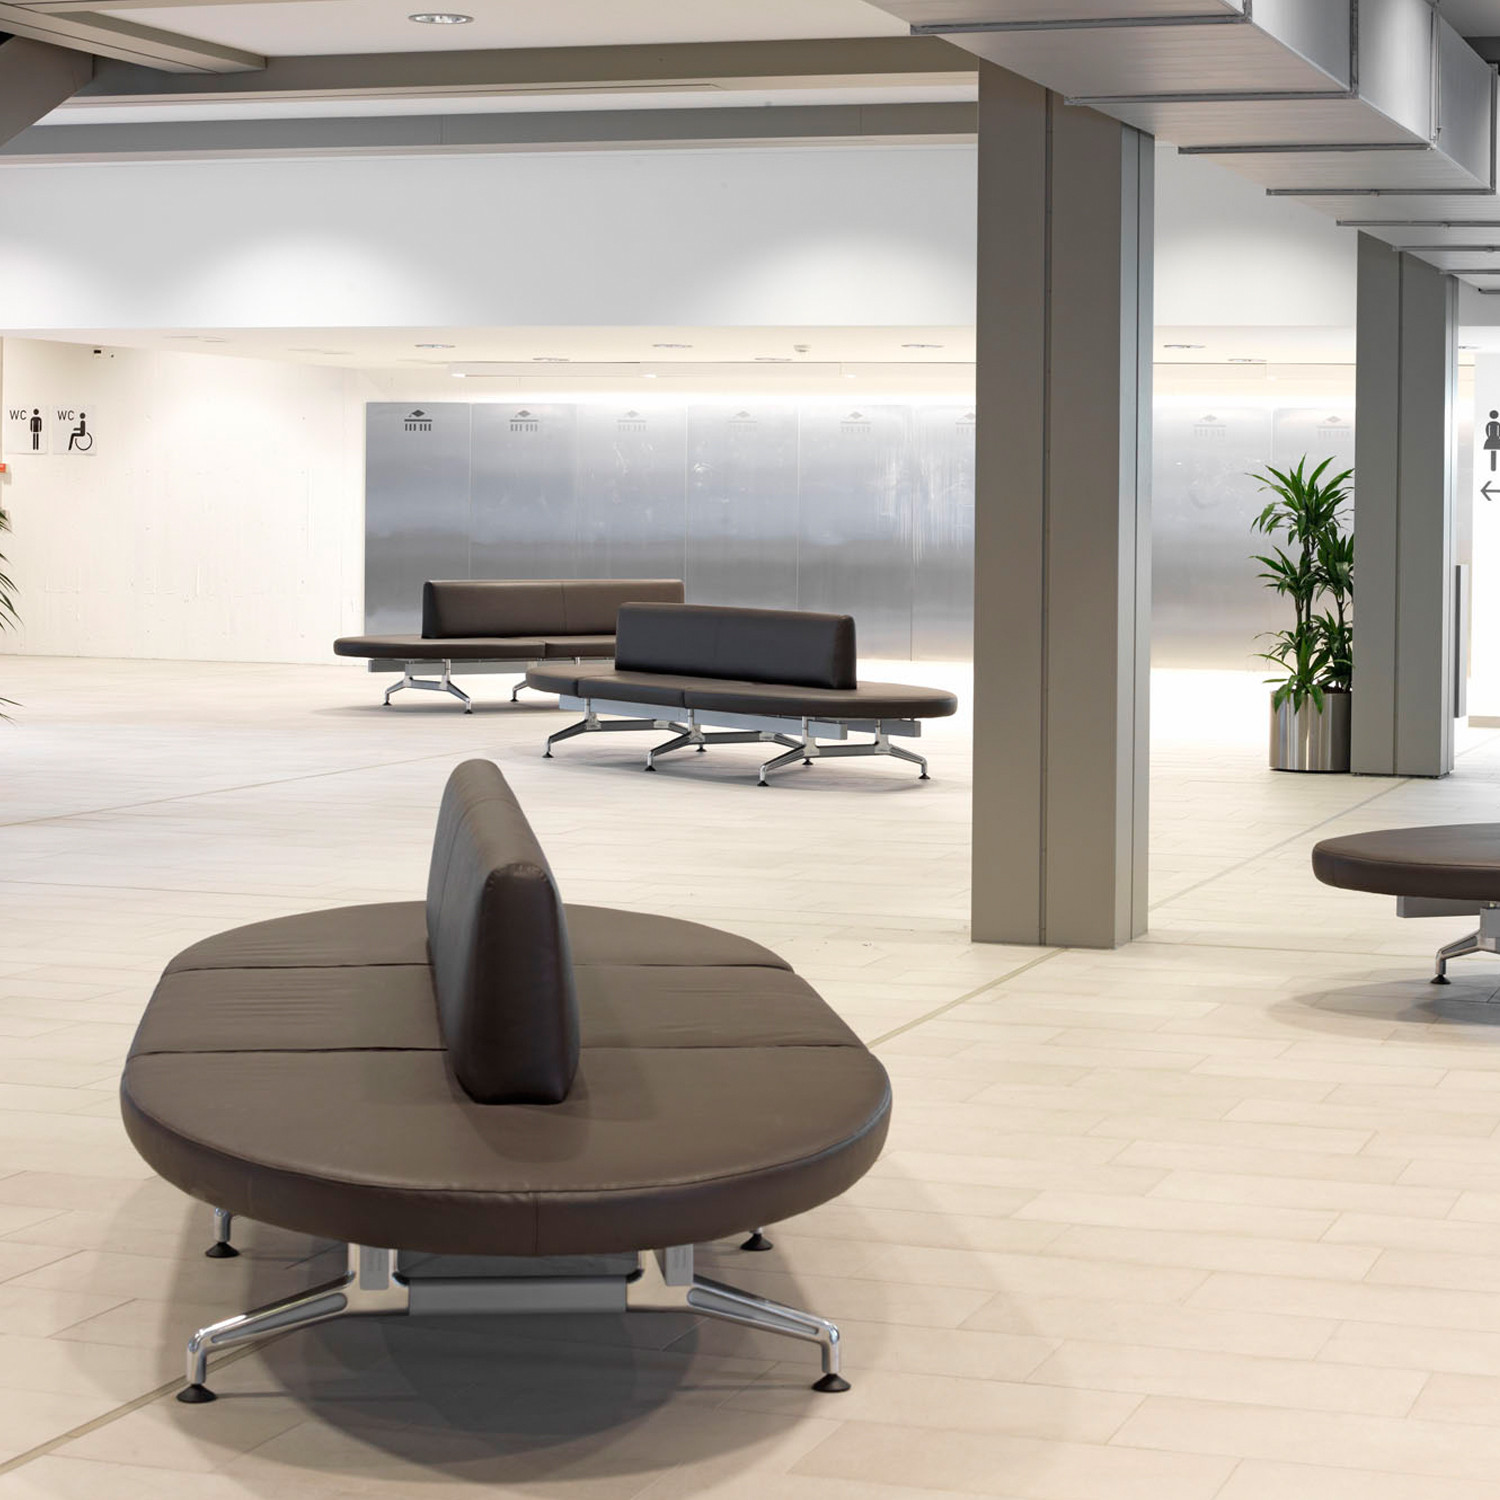 7300 Terminal Bench for Public Areas